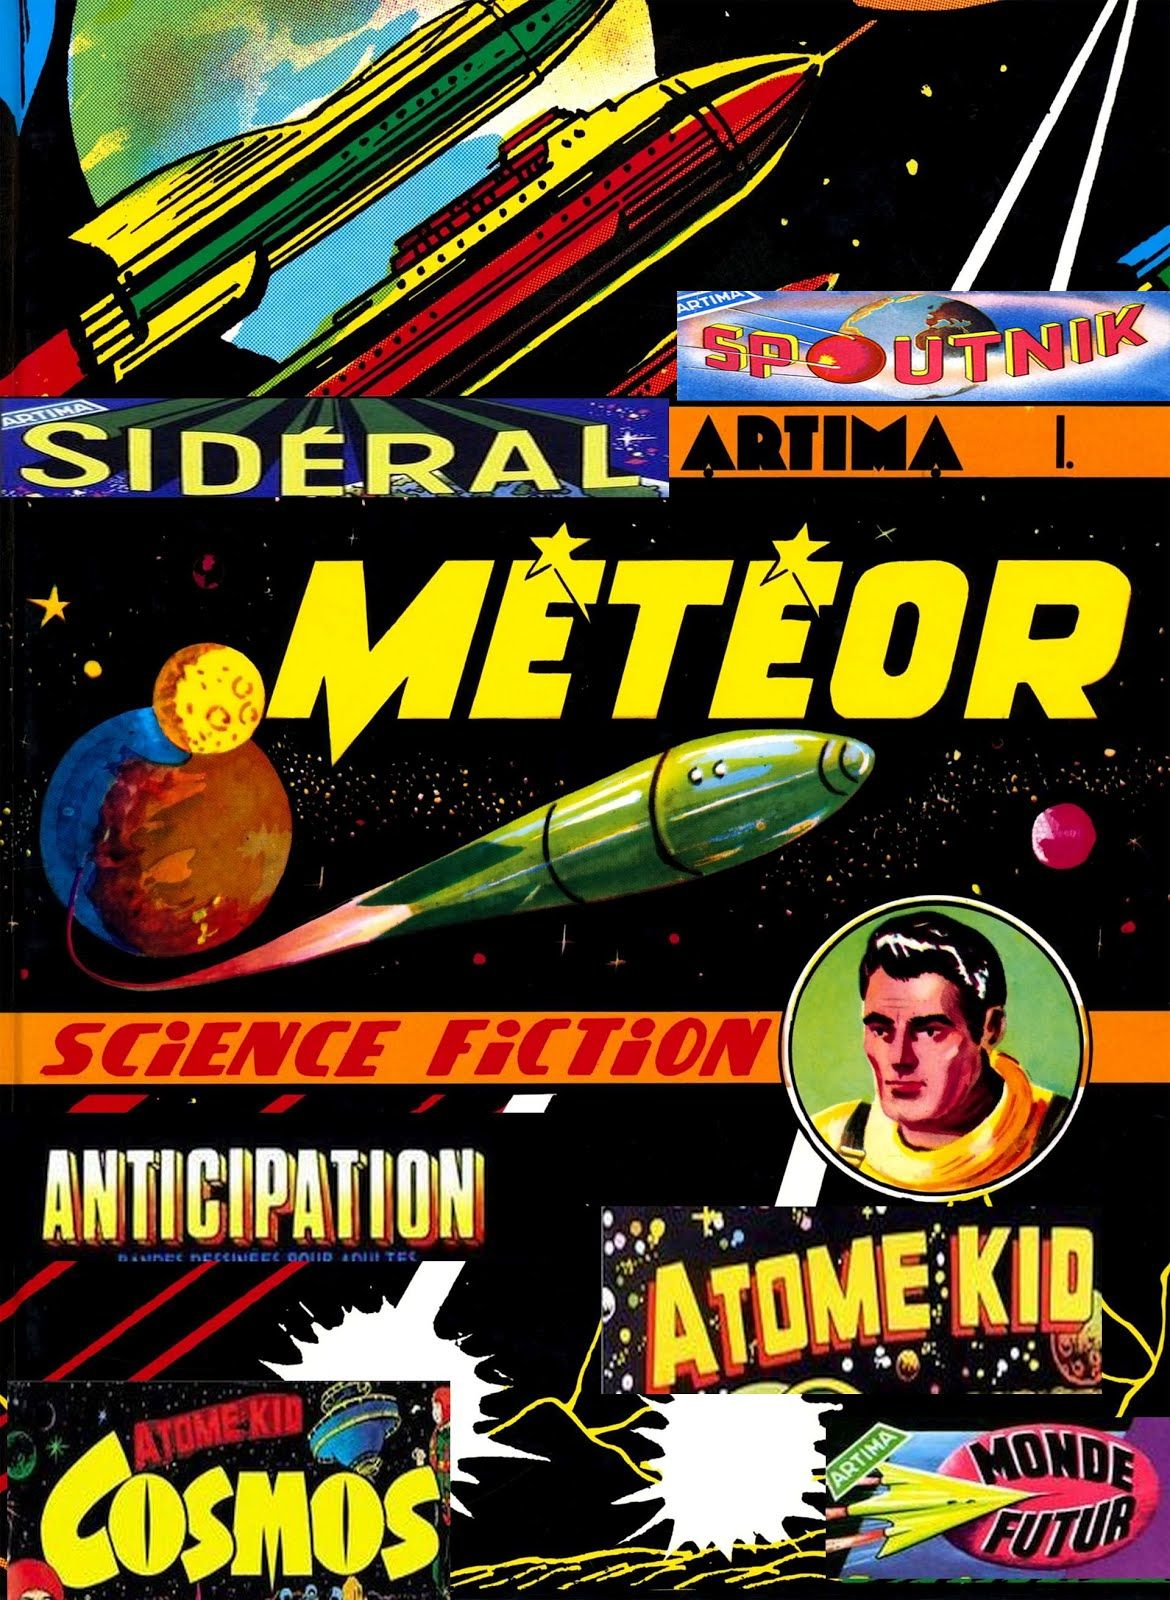 Les collections de science-fiction d'Artima